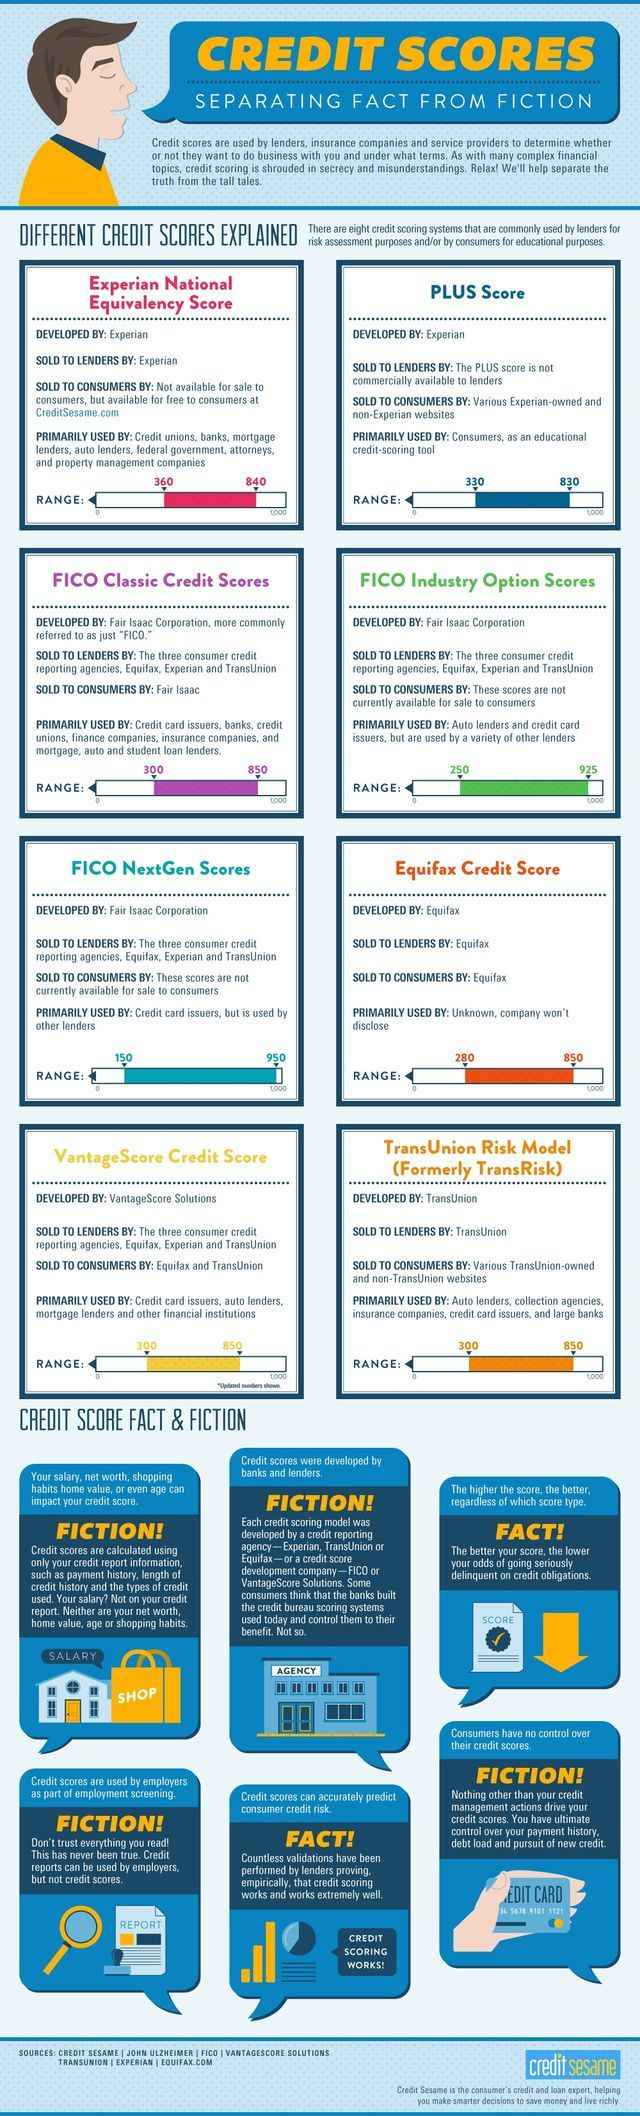 This Infographic Separates Credit Score Fact from Fiction!!!!